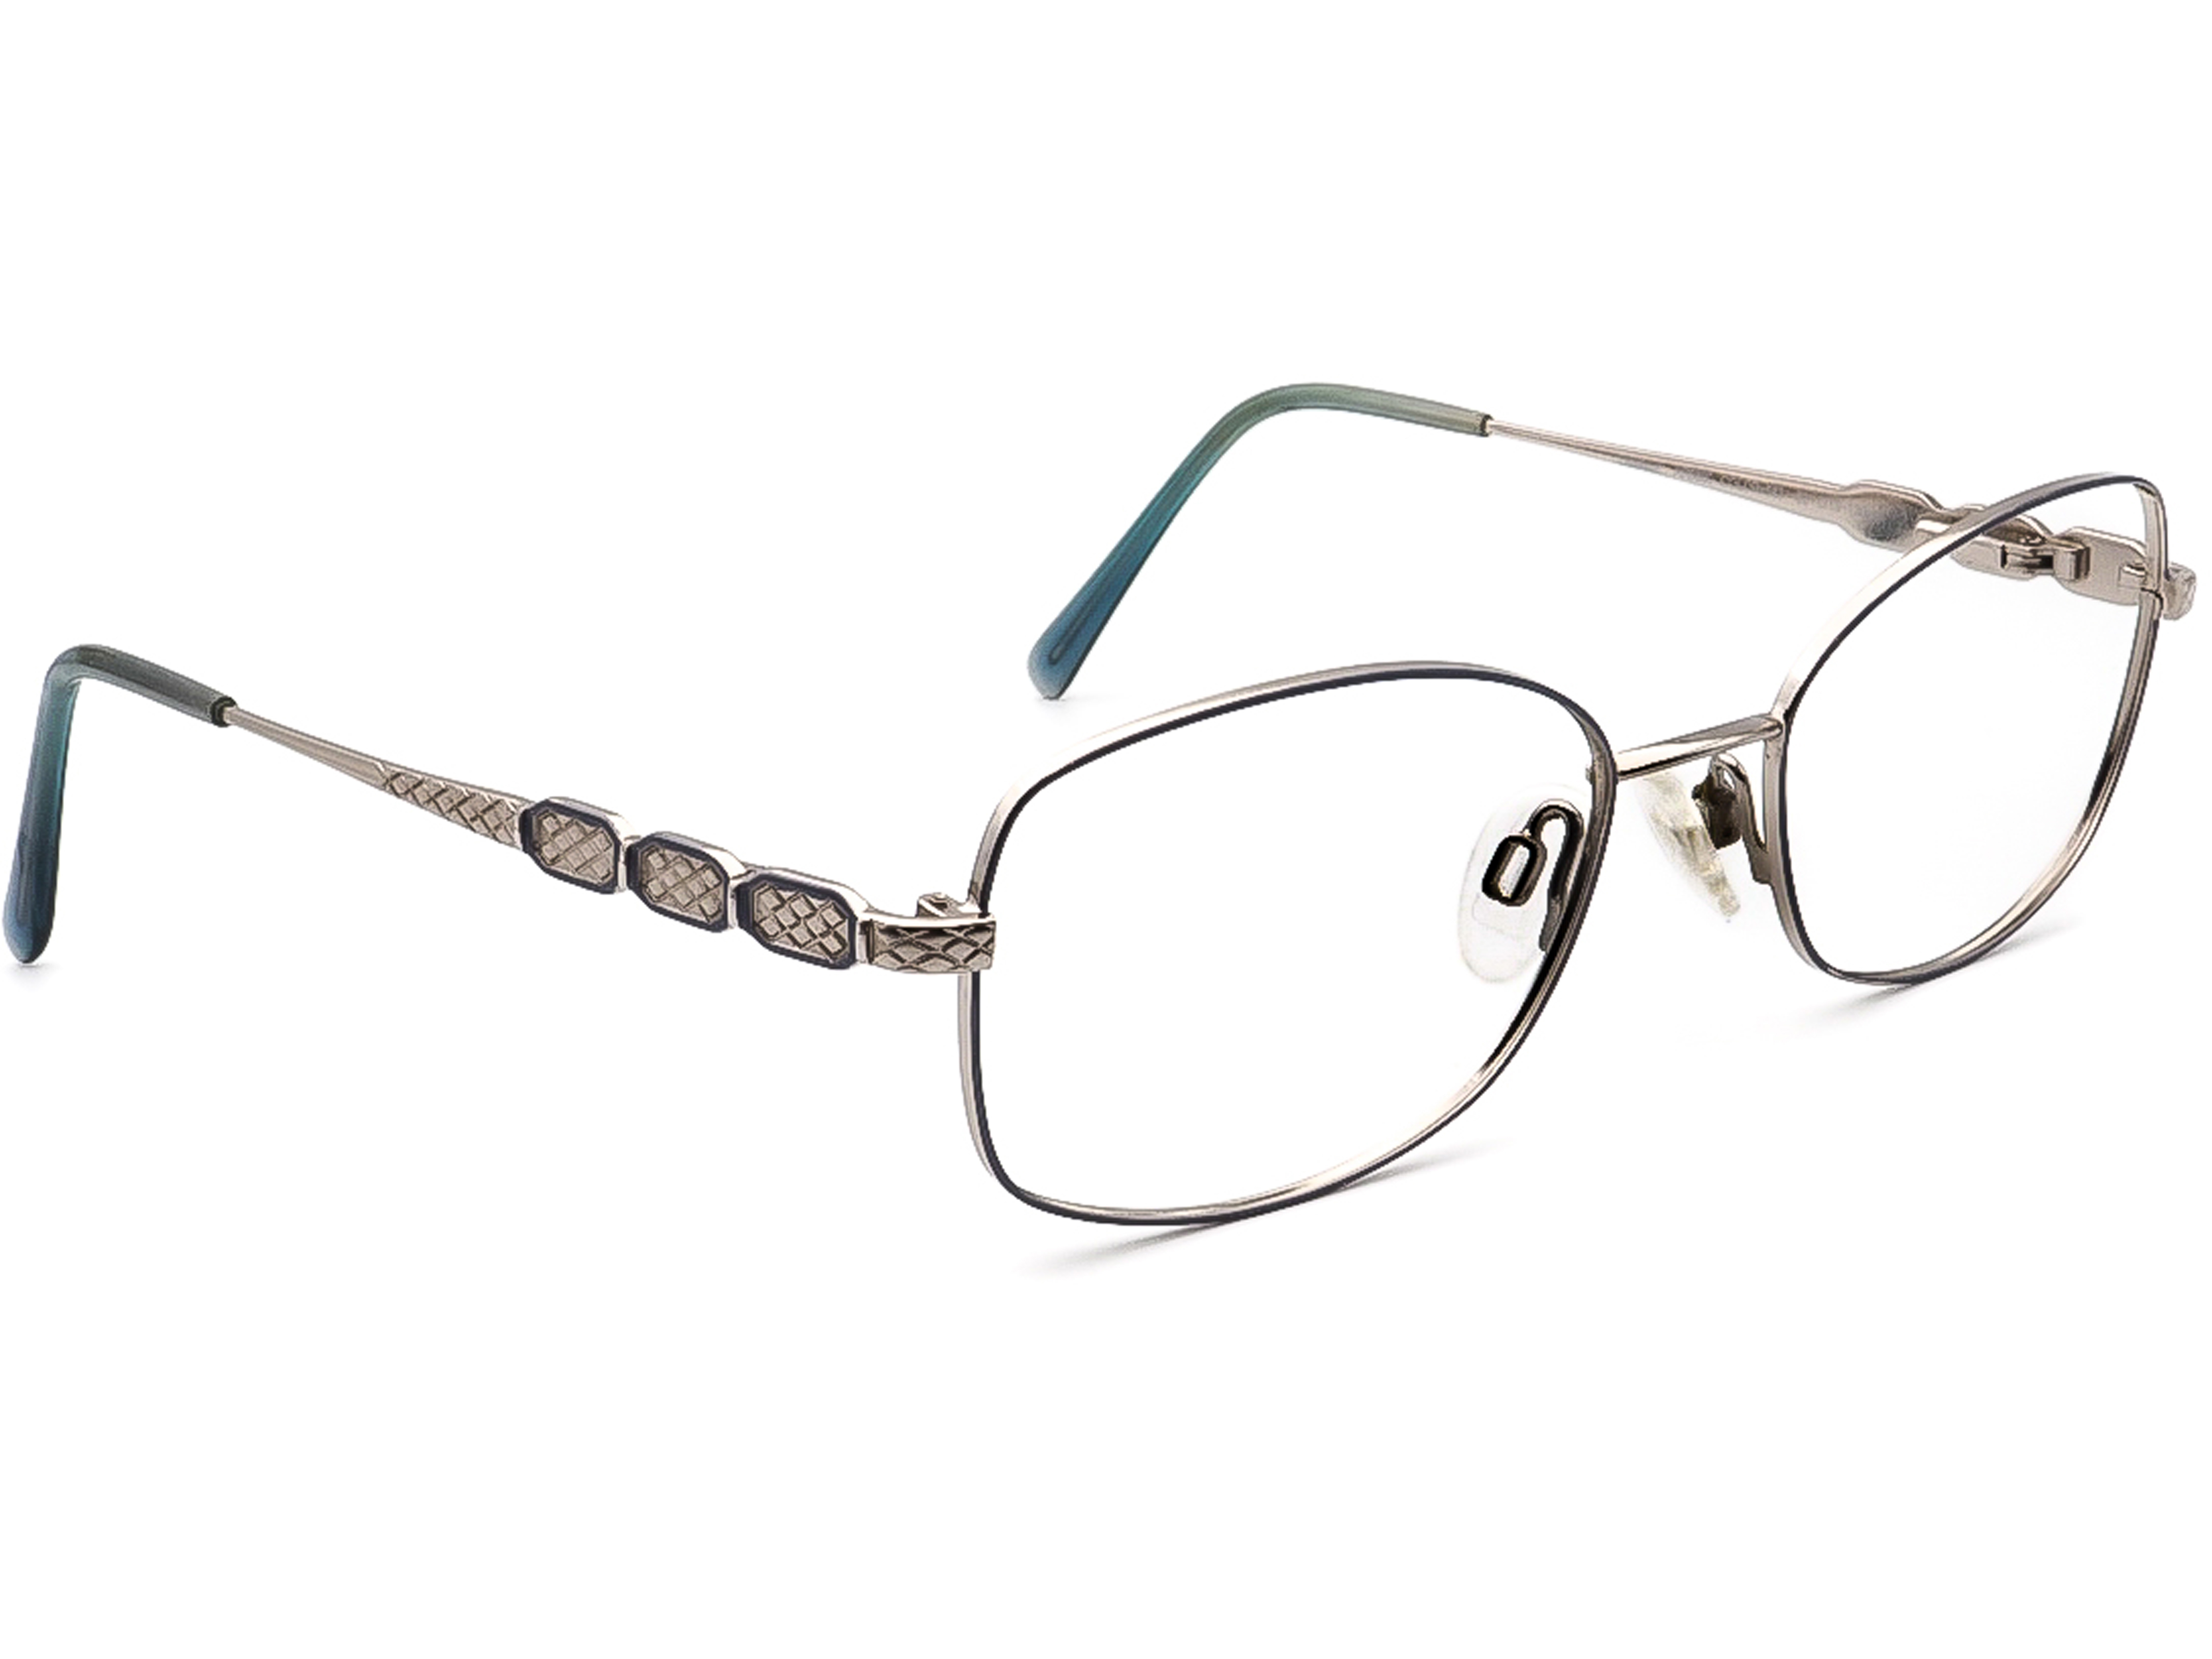 Charmant Aristar AP6890 543 Eyeglasses